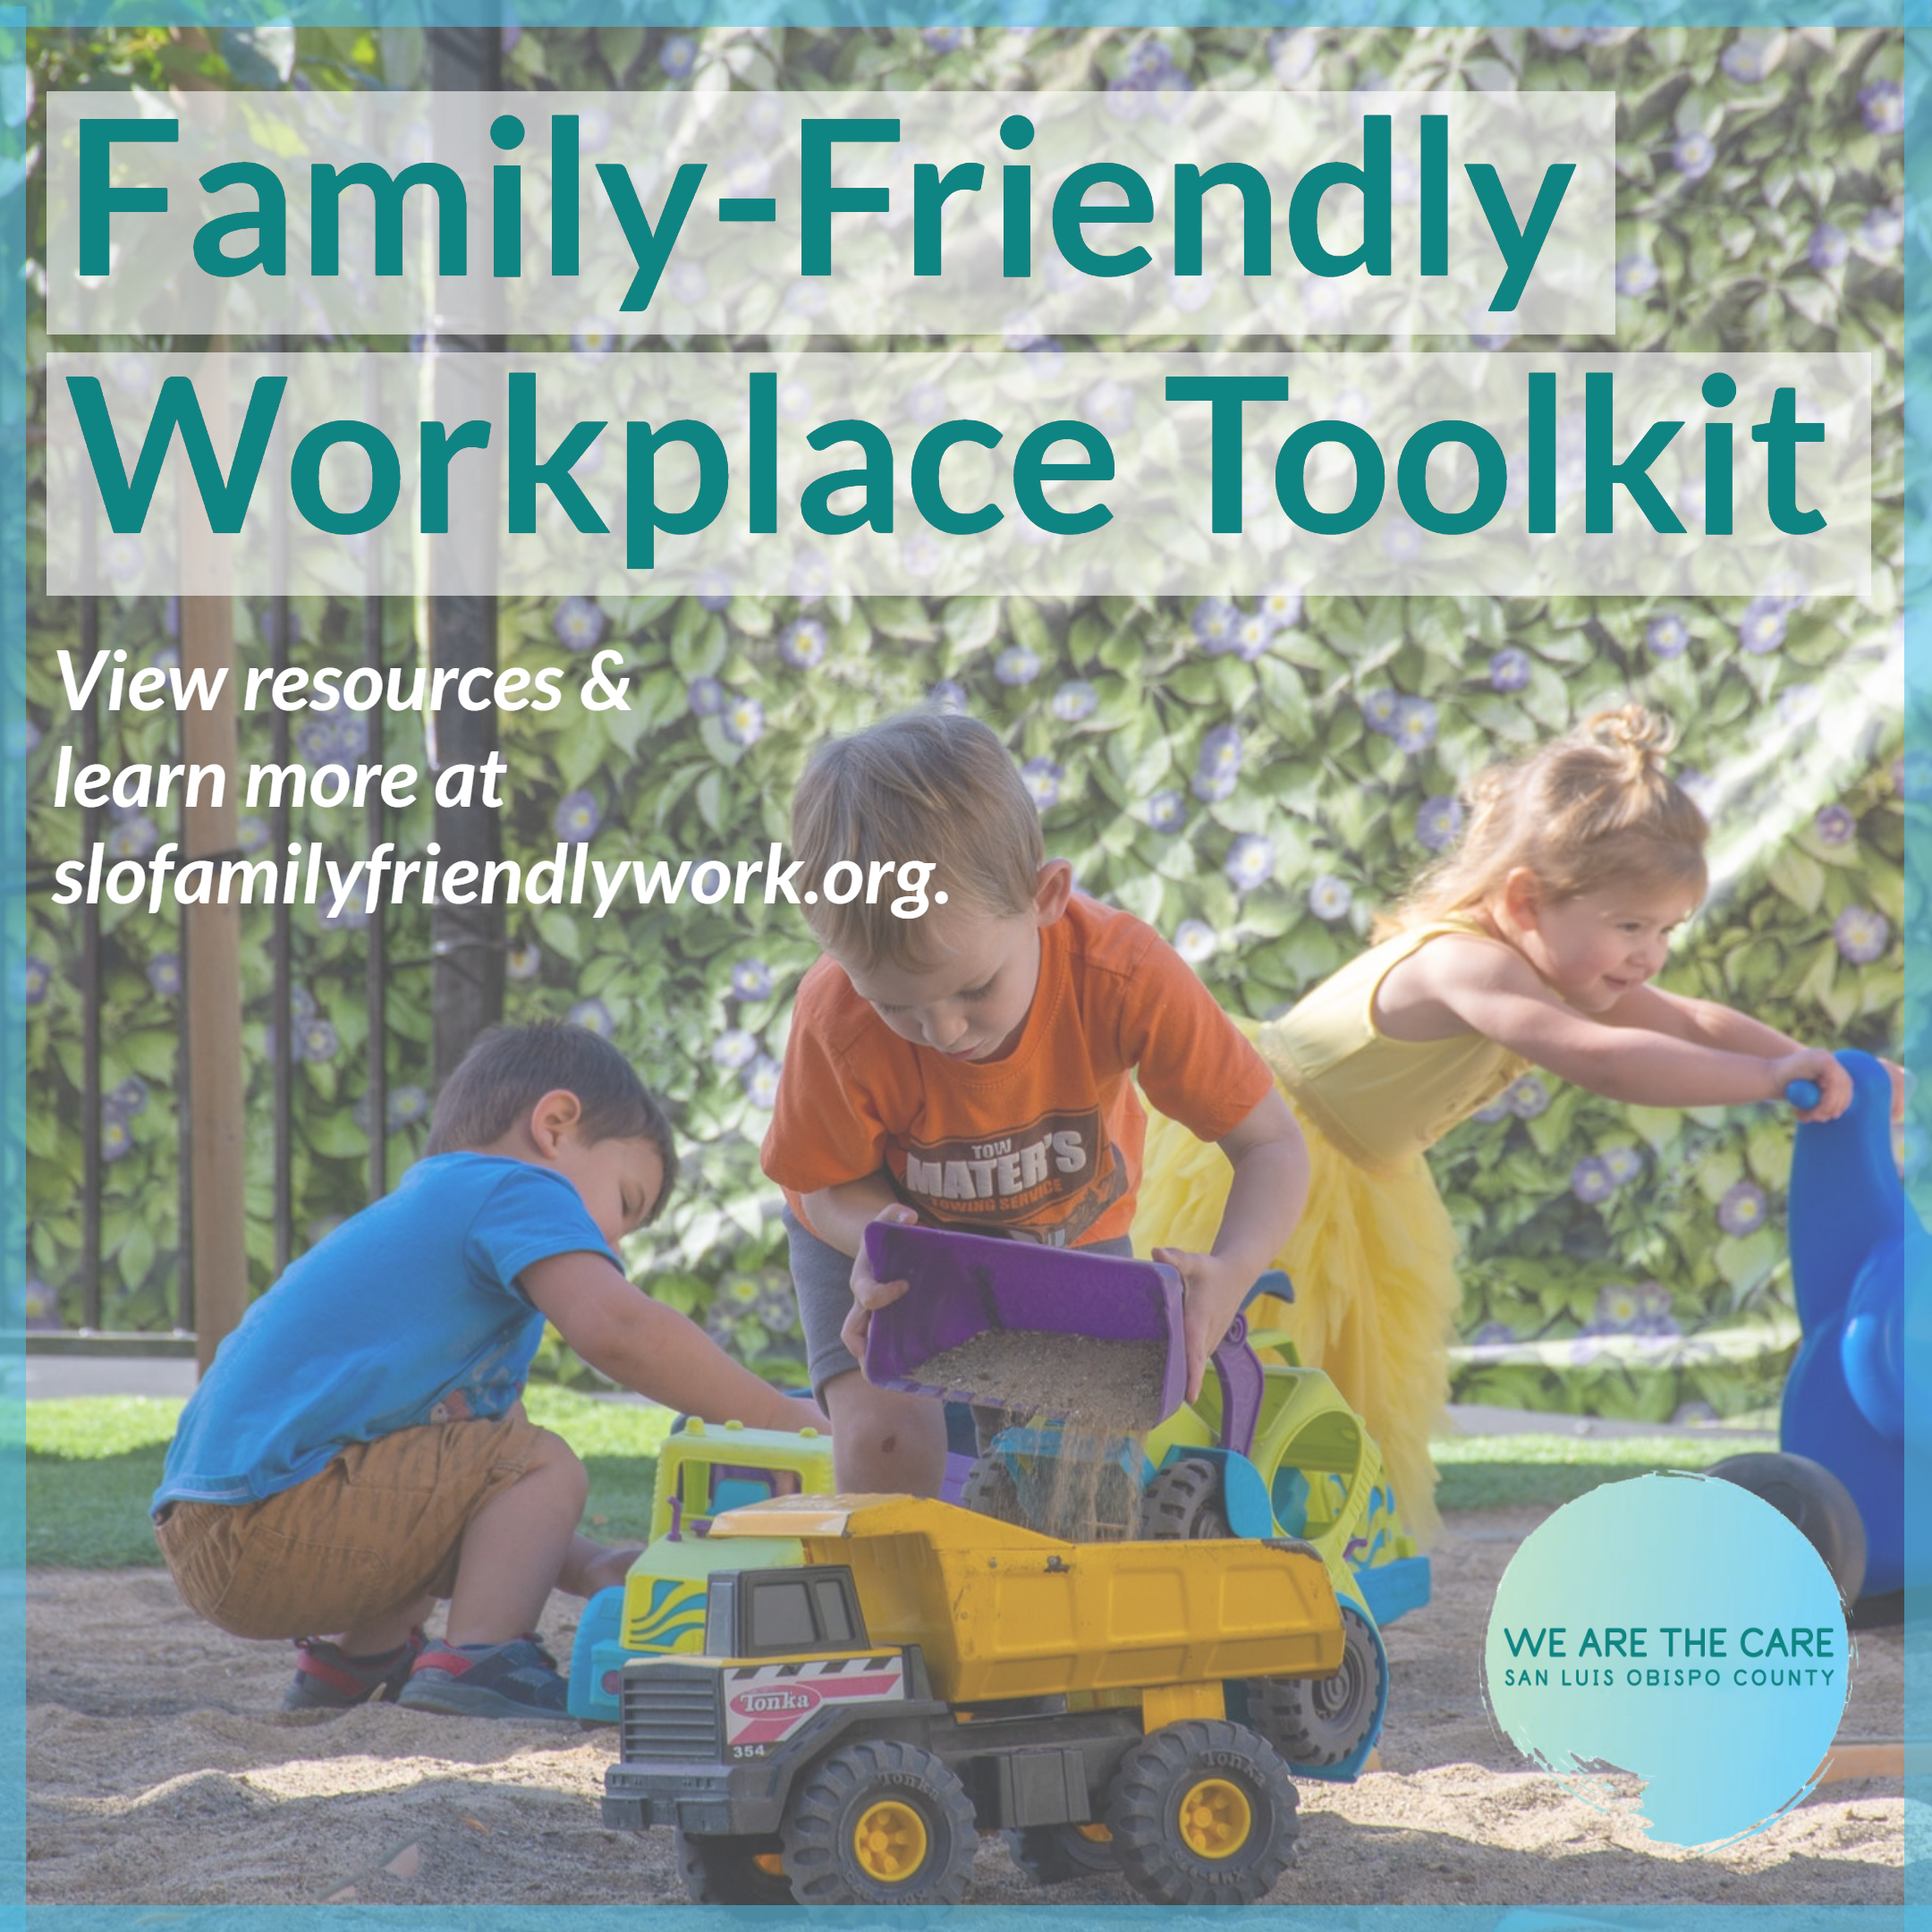 """Children playing on a playground and text advertising the new """"Family-Friendly Workplace Toolkit"""""""